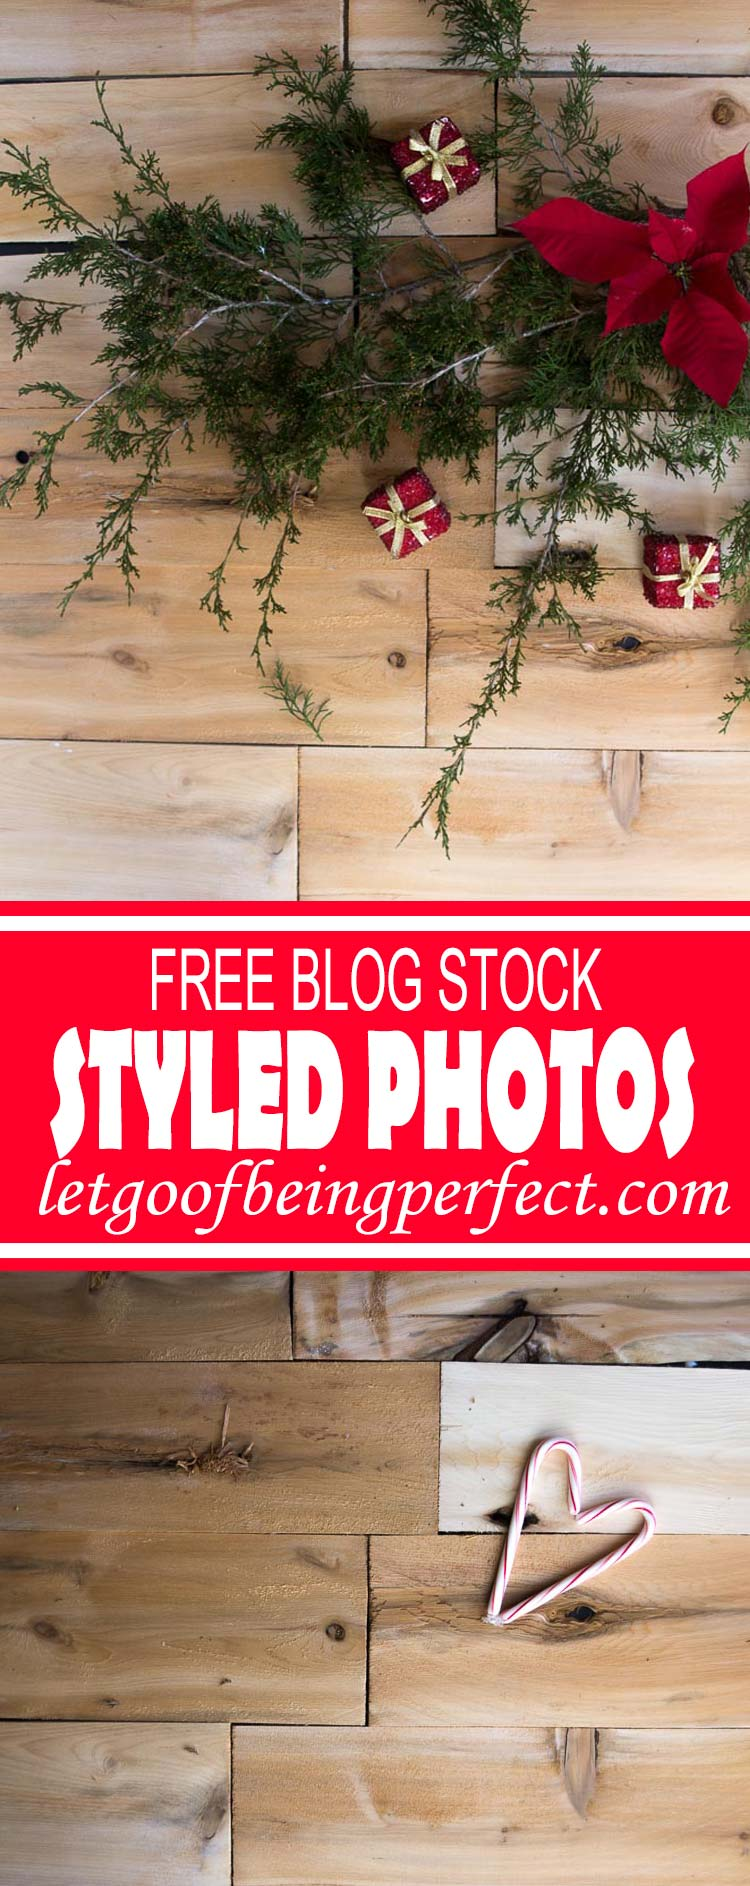 December 2017 Styled Stock #Photos - Download the #photographs for FREE. Sign up for the email newsletter to get new photos every month! #photog #photography #photogs #phototips #photographytips #styledstock #camera #nikon #canon #images #pictures Along the way, learn tips for Lightroom, Photoshop, and other tutorials to make your own photographs outstanding. http://letgoofbeingperfect.com//category/photography-bloggers/